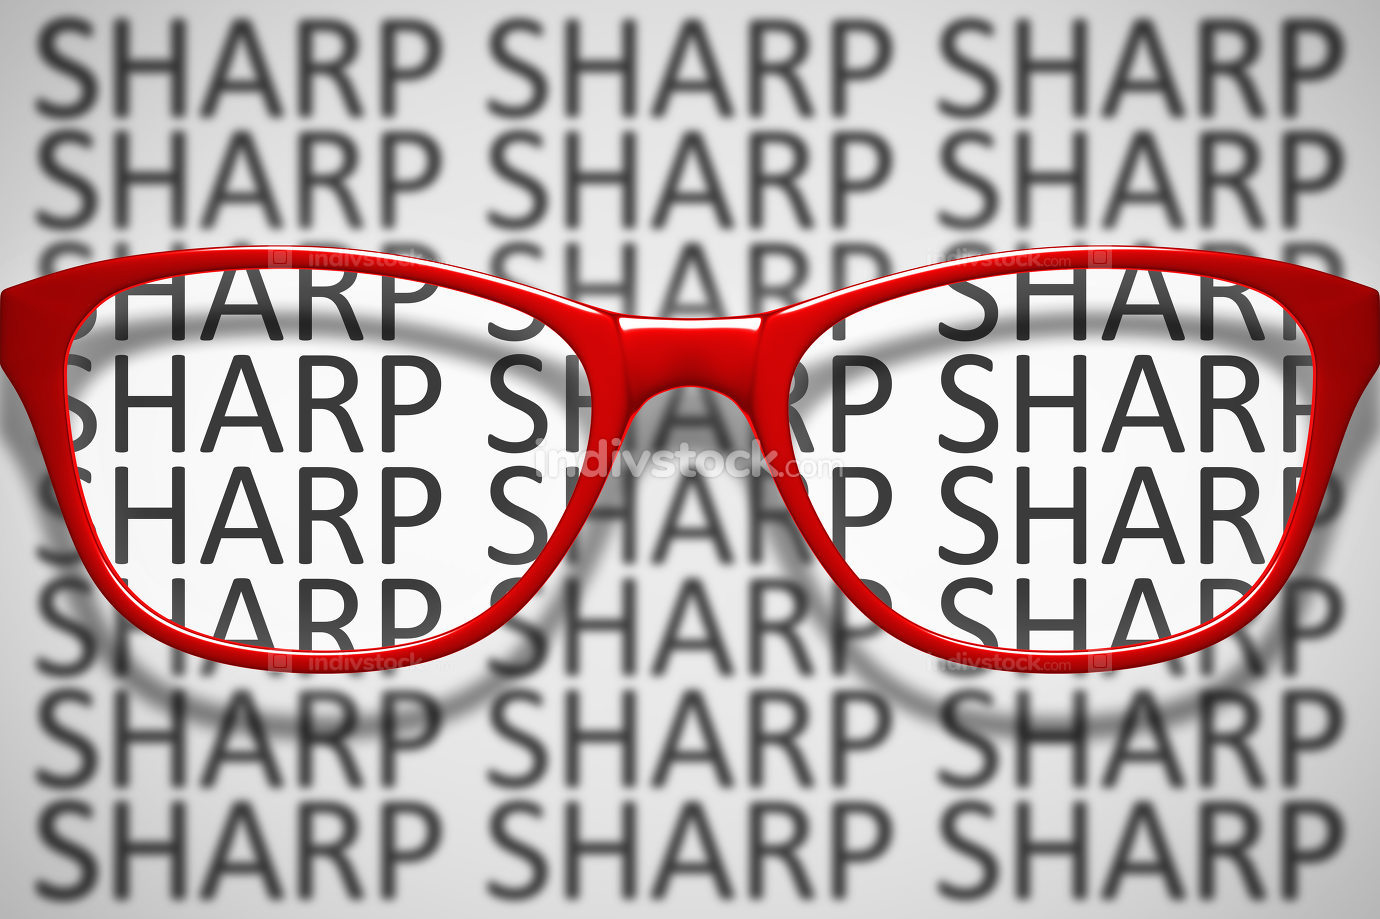 red glasses with text sharp and blurred